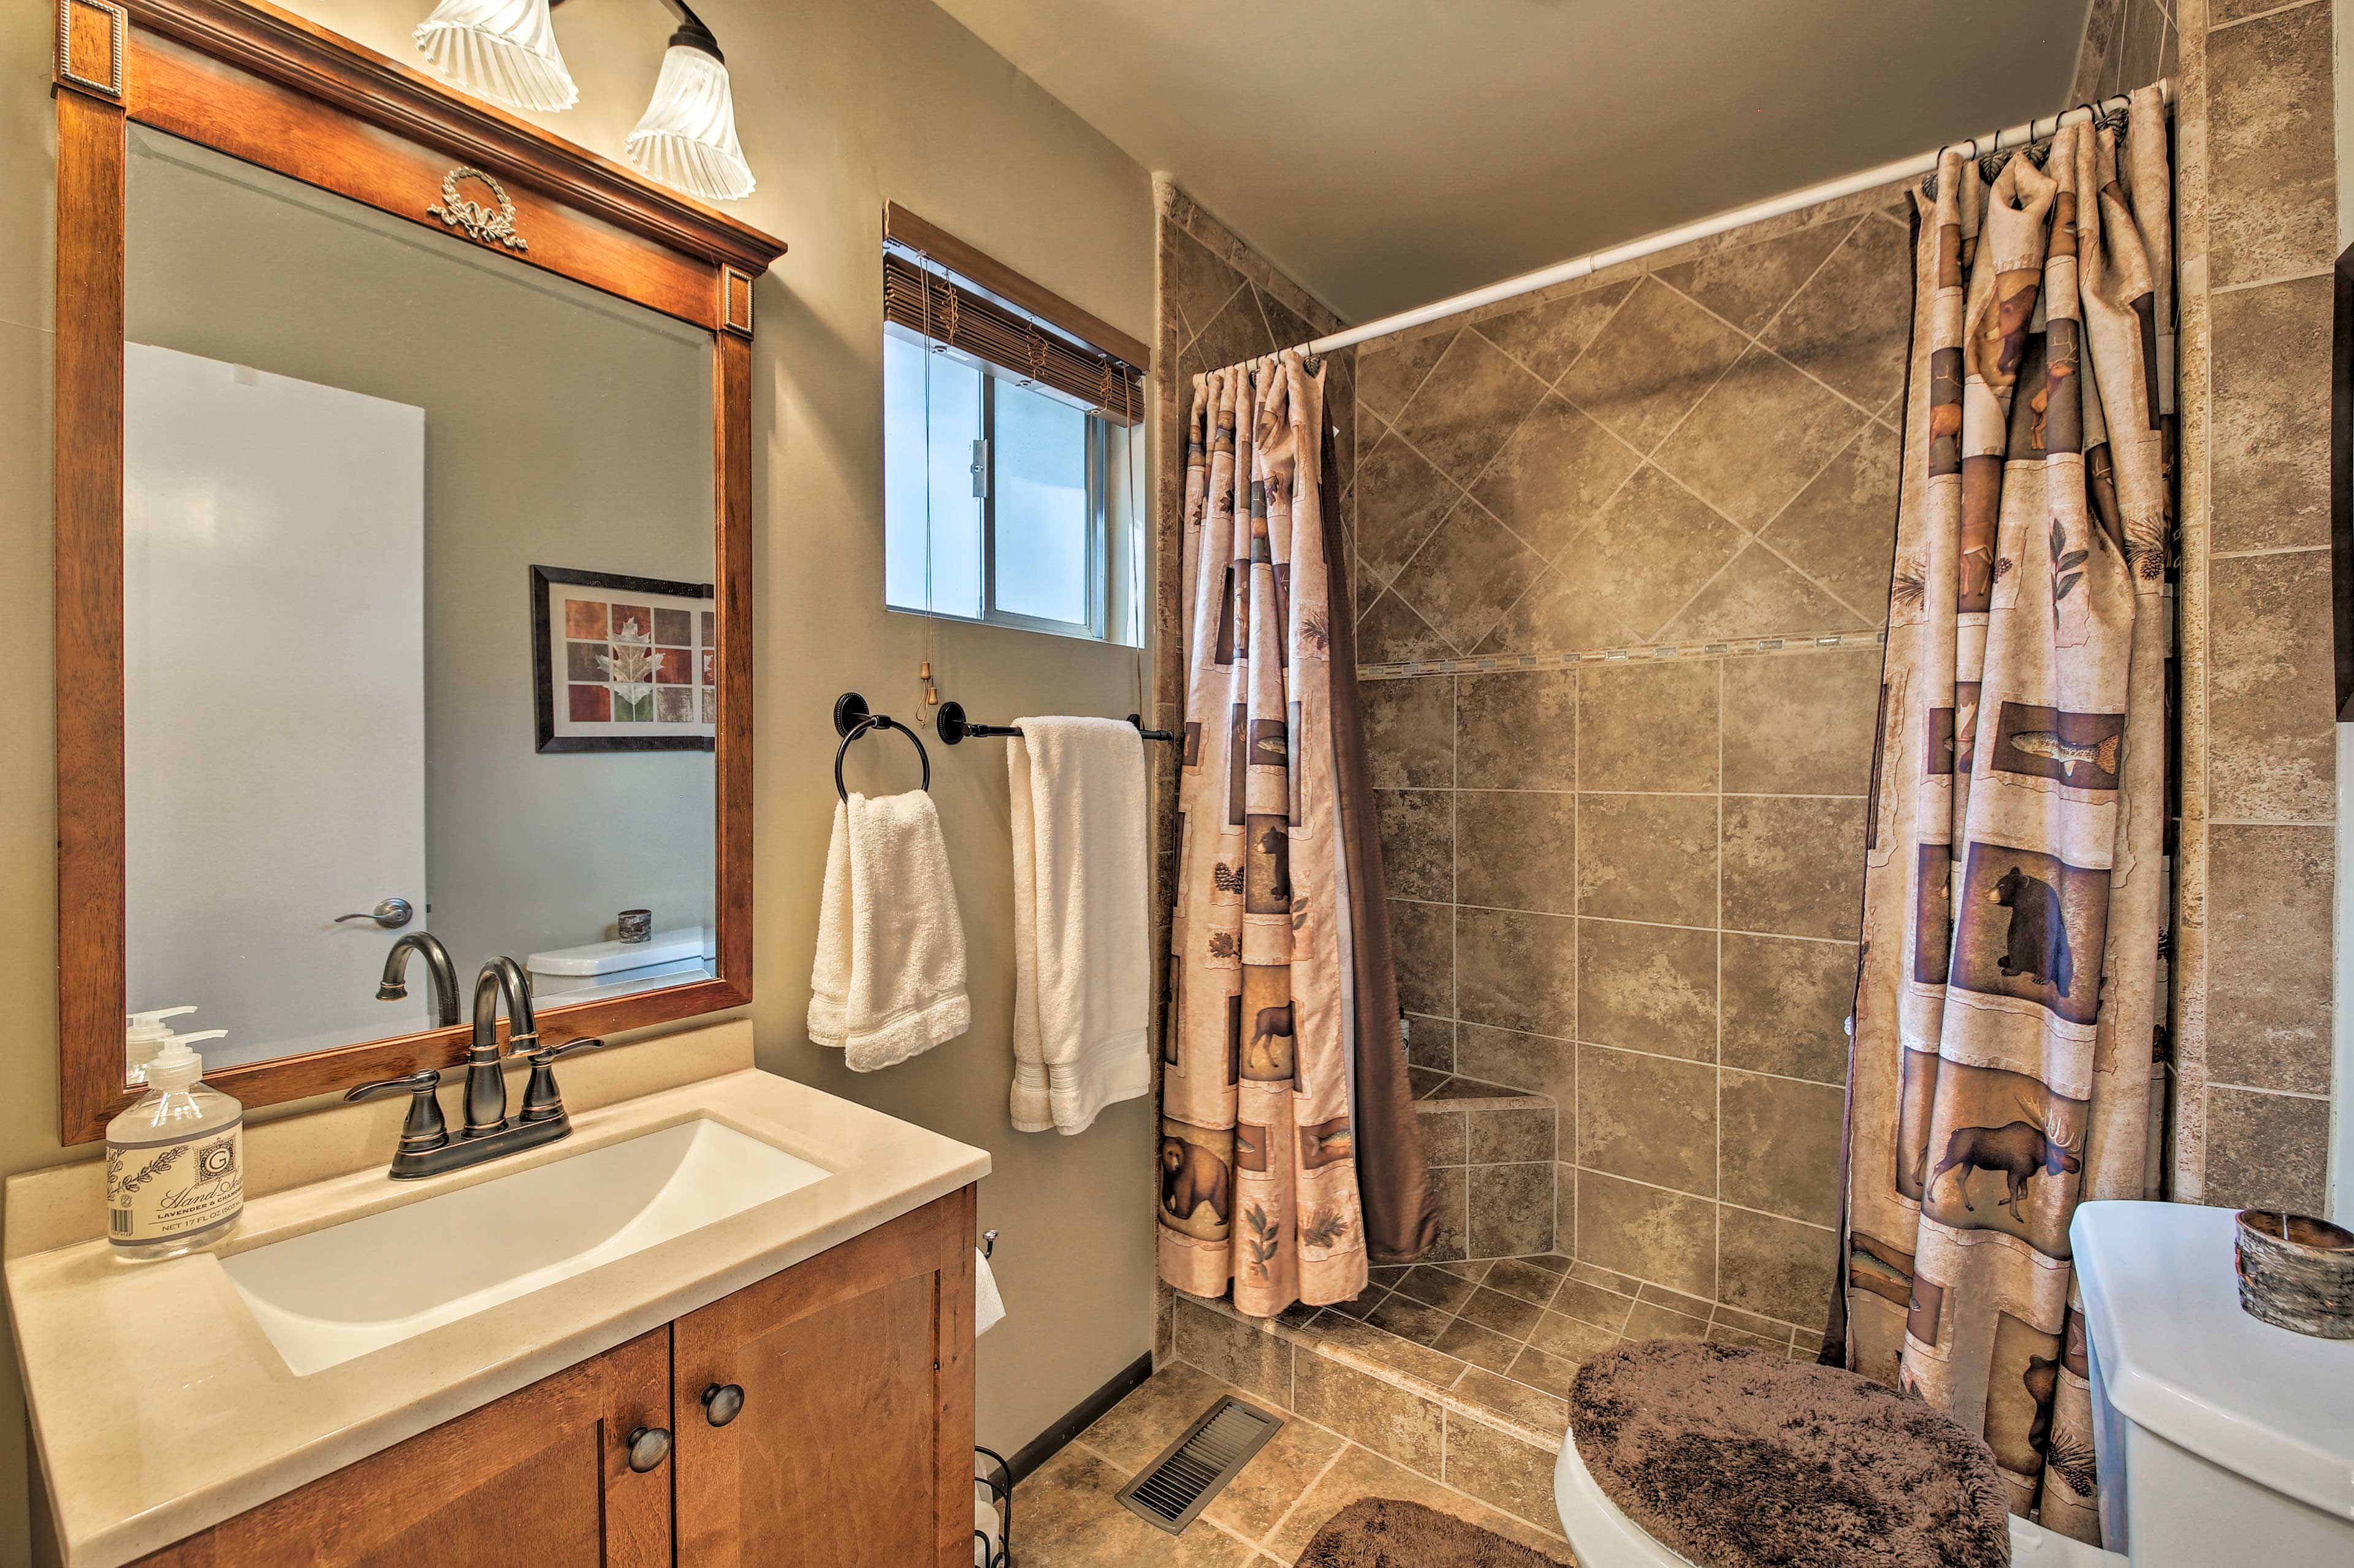 This bathroom sits right off the main living area.